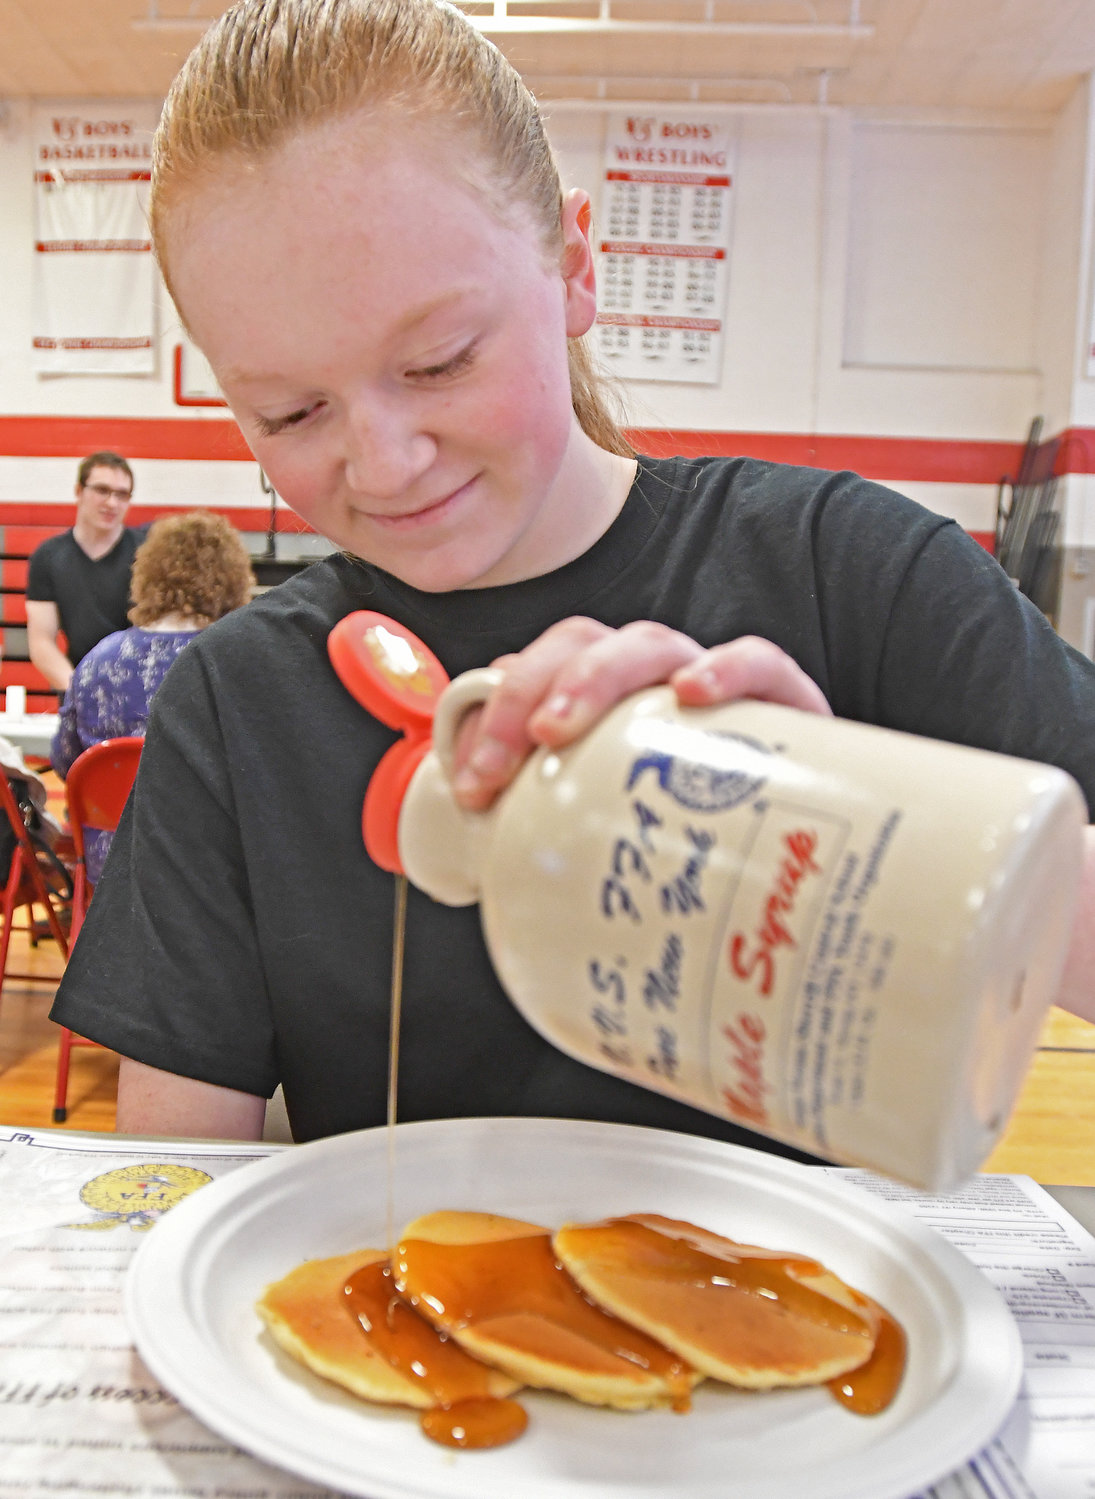 FRUITS OF THEIR LABOR — VVS FFA Secretary Rachel Champney is set to enjoy a trio of pancakes by pouring the maple syrup the school produces and sells. Go online to www.mapleweekend.com.